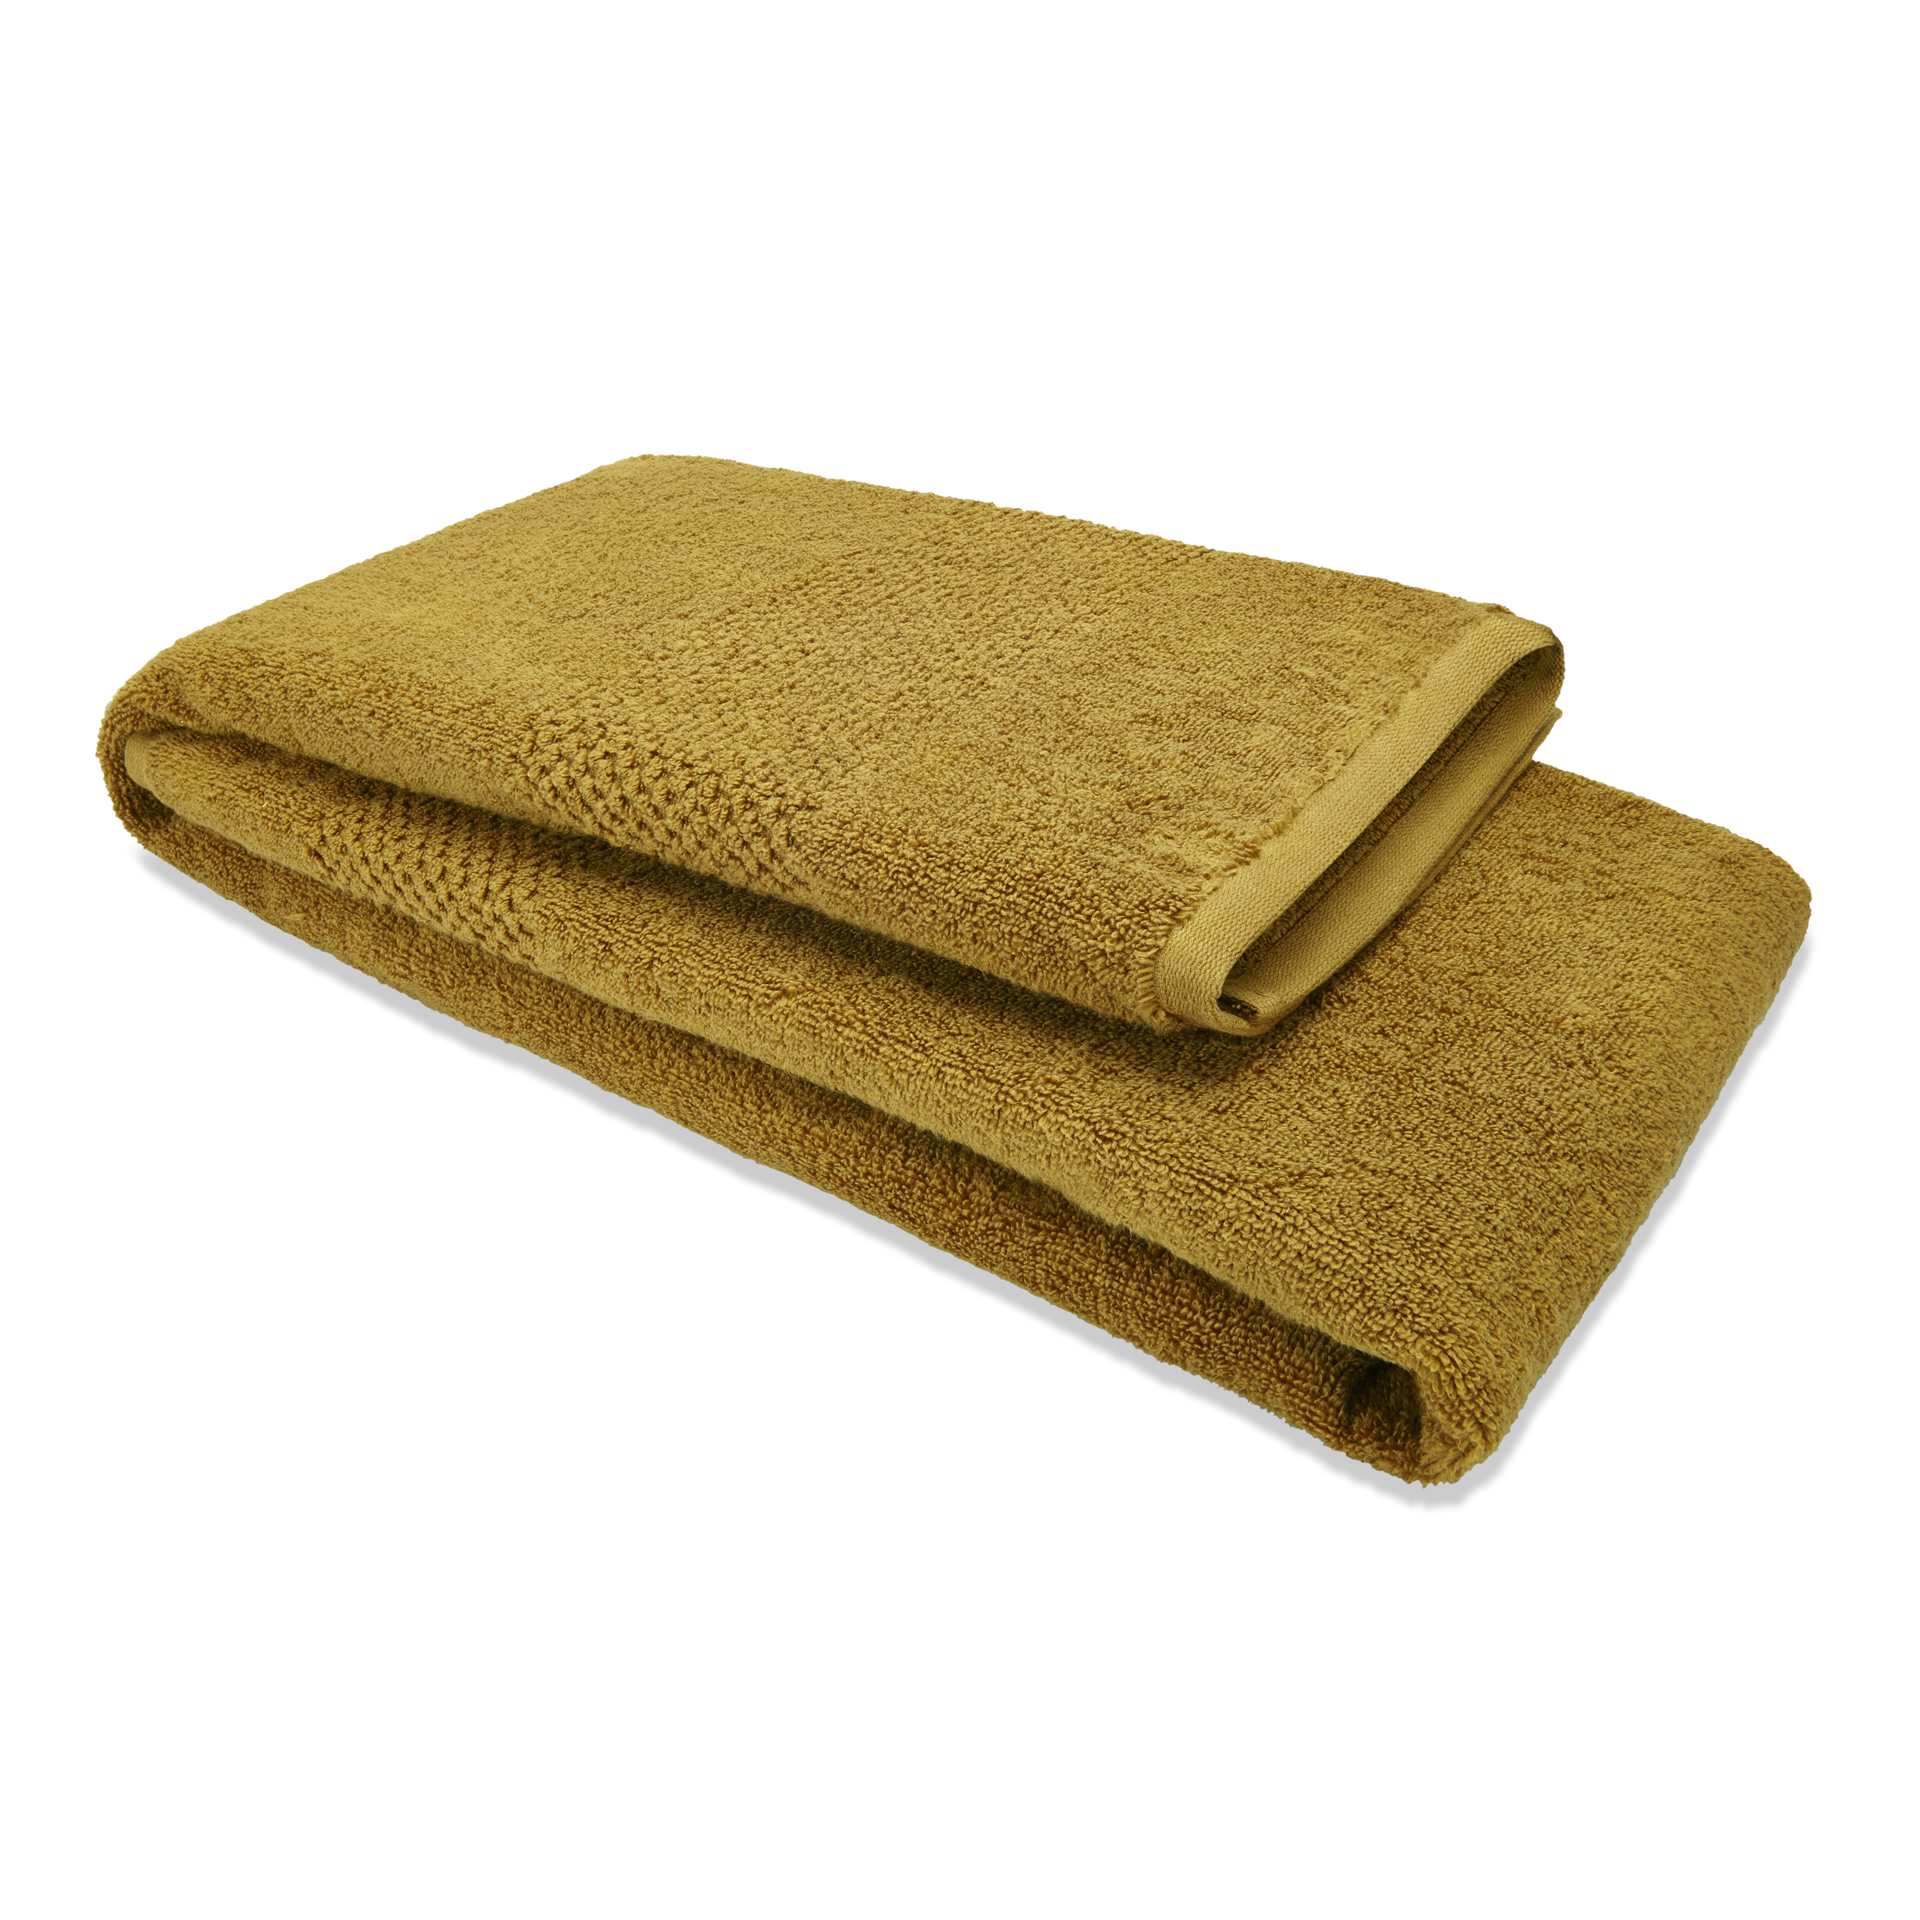 Spaces Atrium Cotton Double Bed Sheets in Golden Colour by Spaces